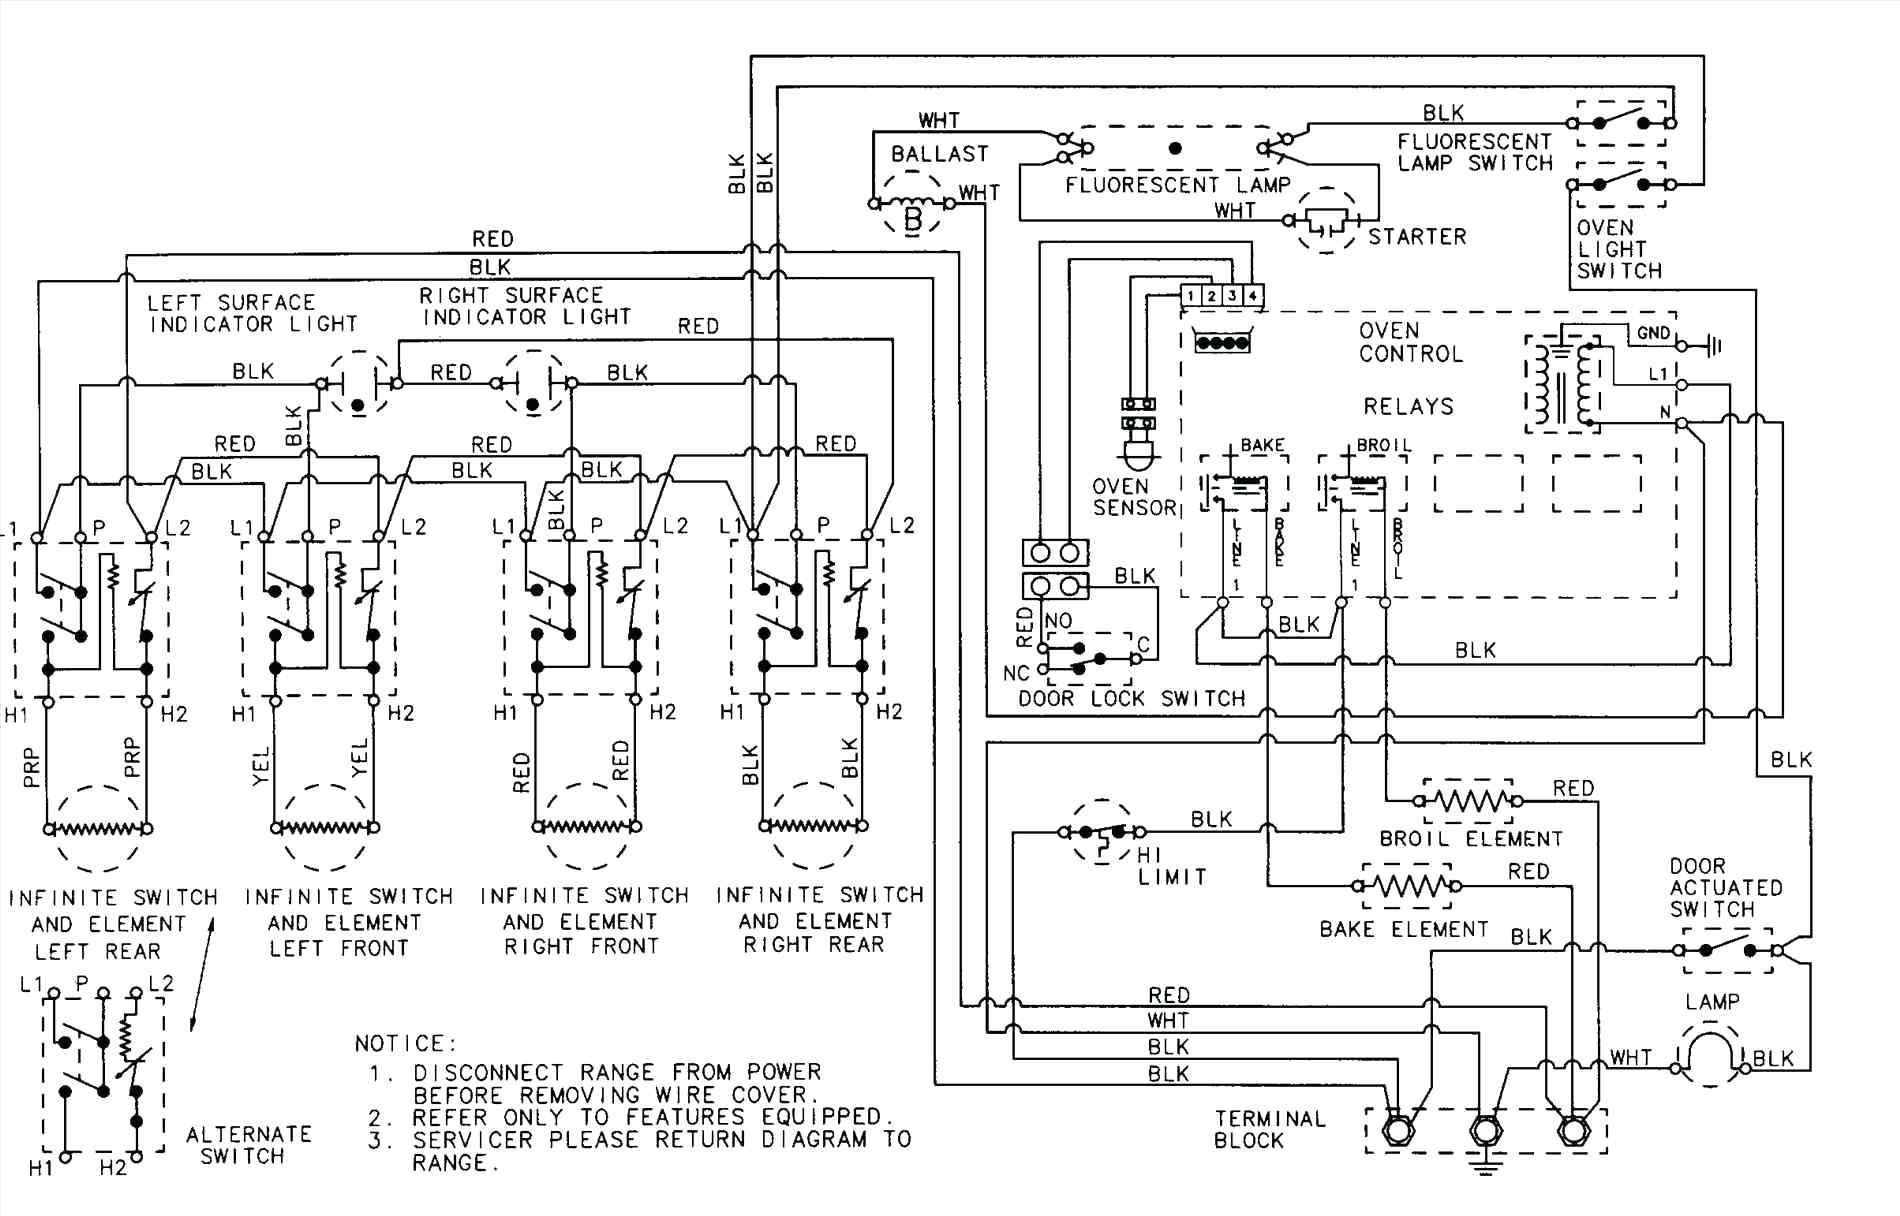 ge dryer start switch wiring diagram Download-Wiring Diagram for A Ge Dryer Fresh Ge Dryer Start Switch Wiring Diagram Fresh Ge Dryer 15-o